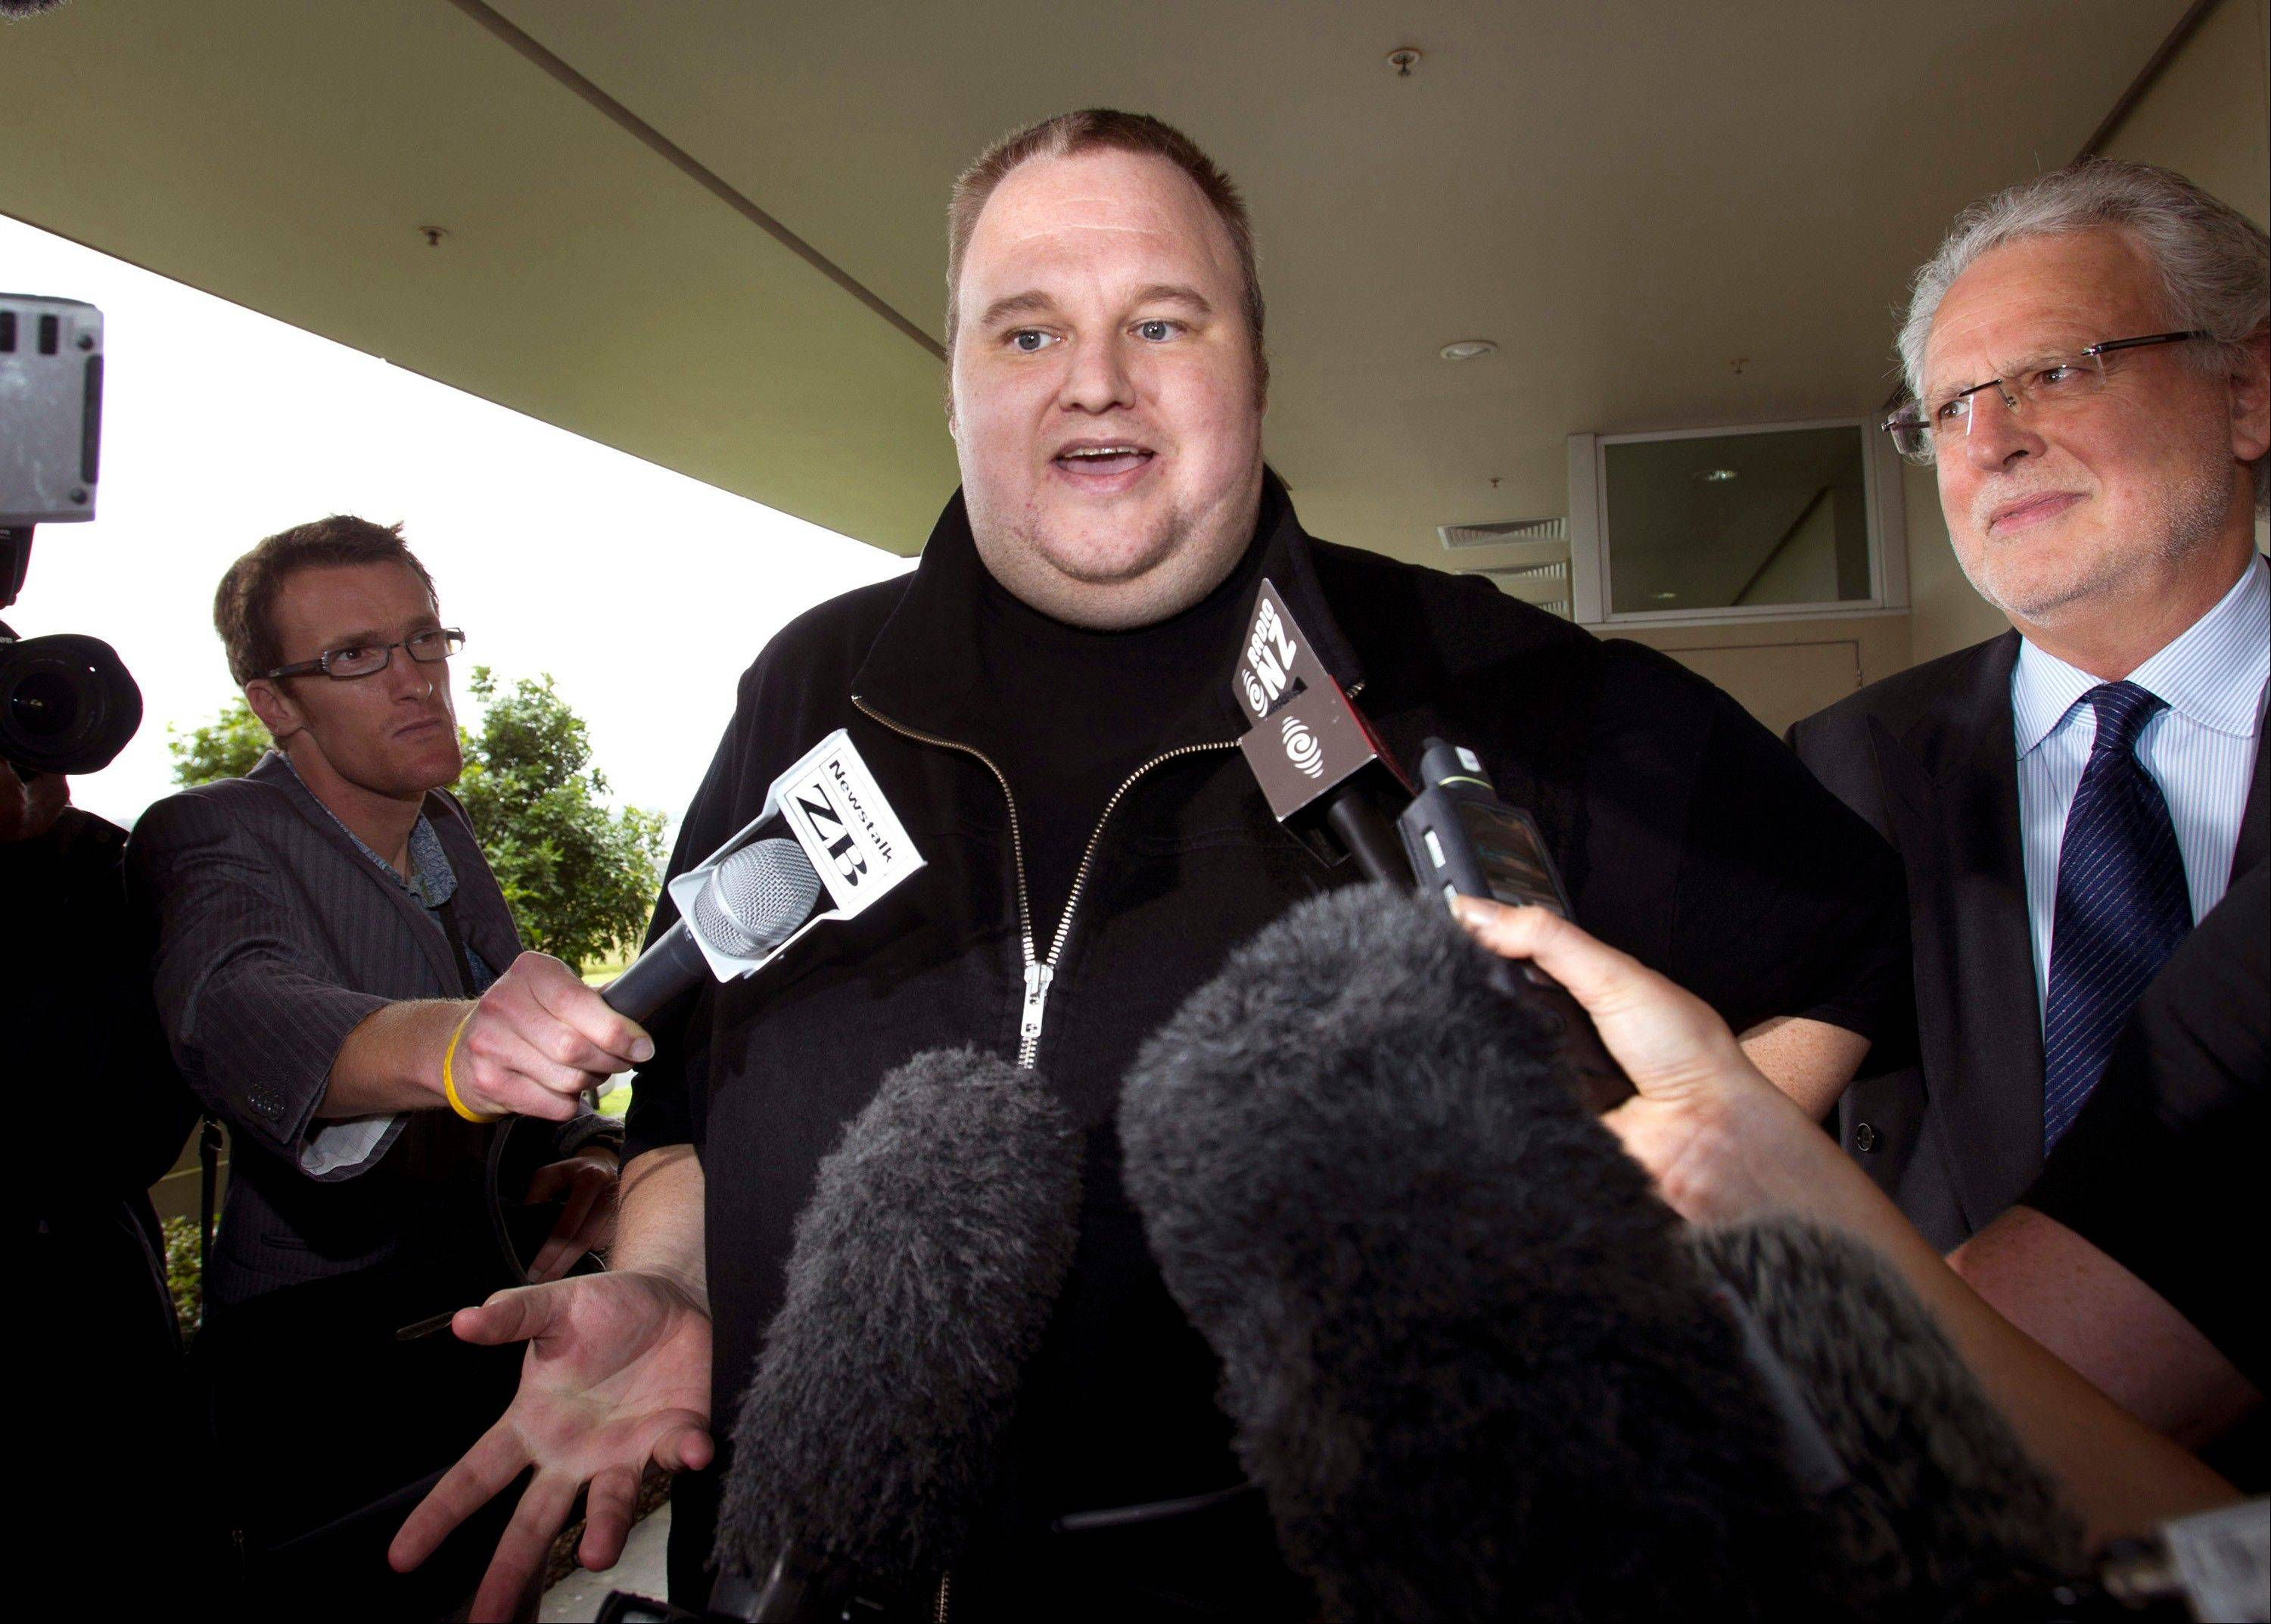 "Indicted Megaupload founder Kim Dotcom has launched a new file-sharing website in a defiant move against the U.S. prosecutors who accuse him of facilitating massive online piracy. The colorful entrepreneur unveiled the ""Mega"" site ahead of a lavish gala and news conference planned at his New Zealand mansion on Sunday night."